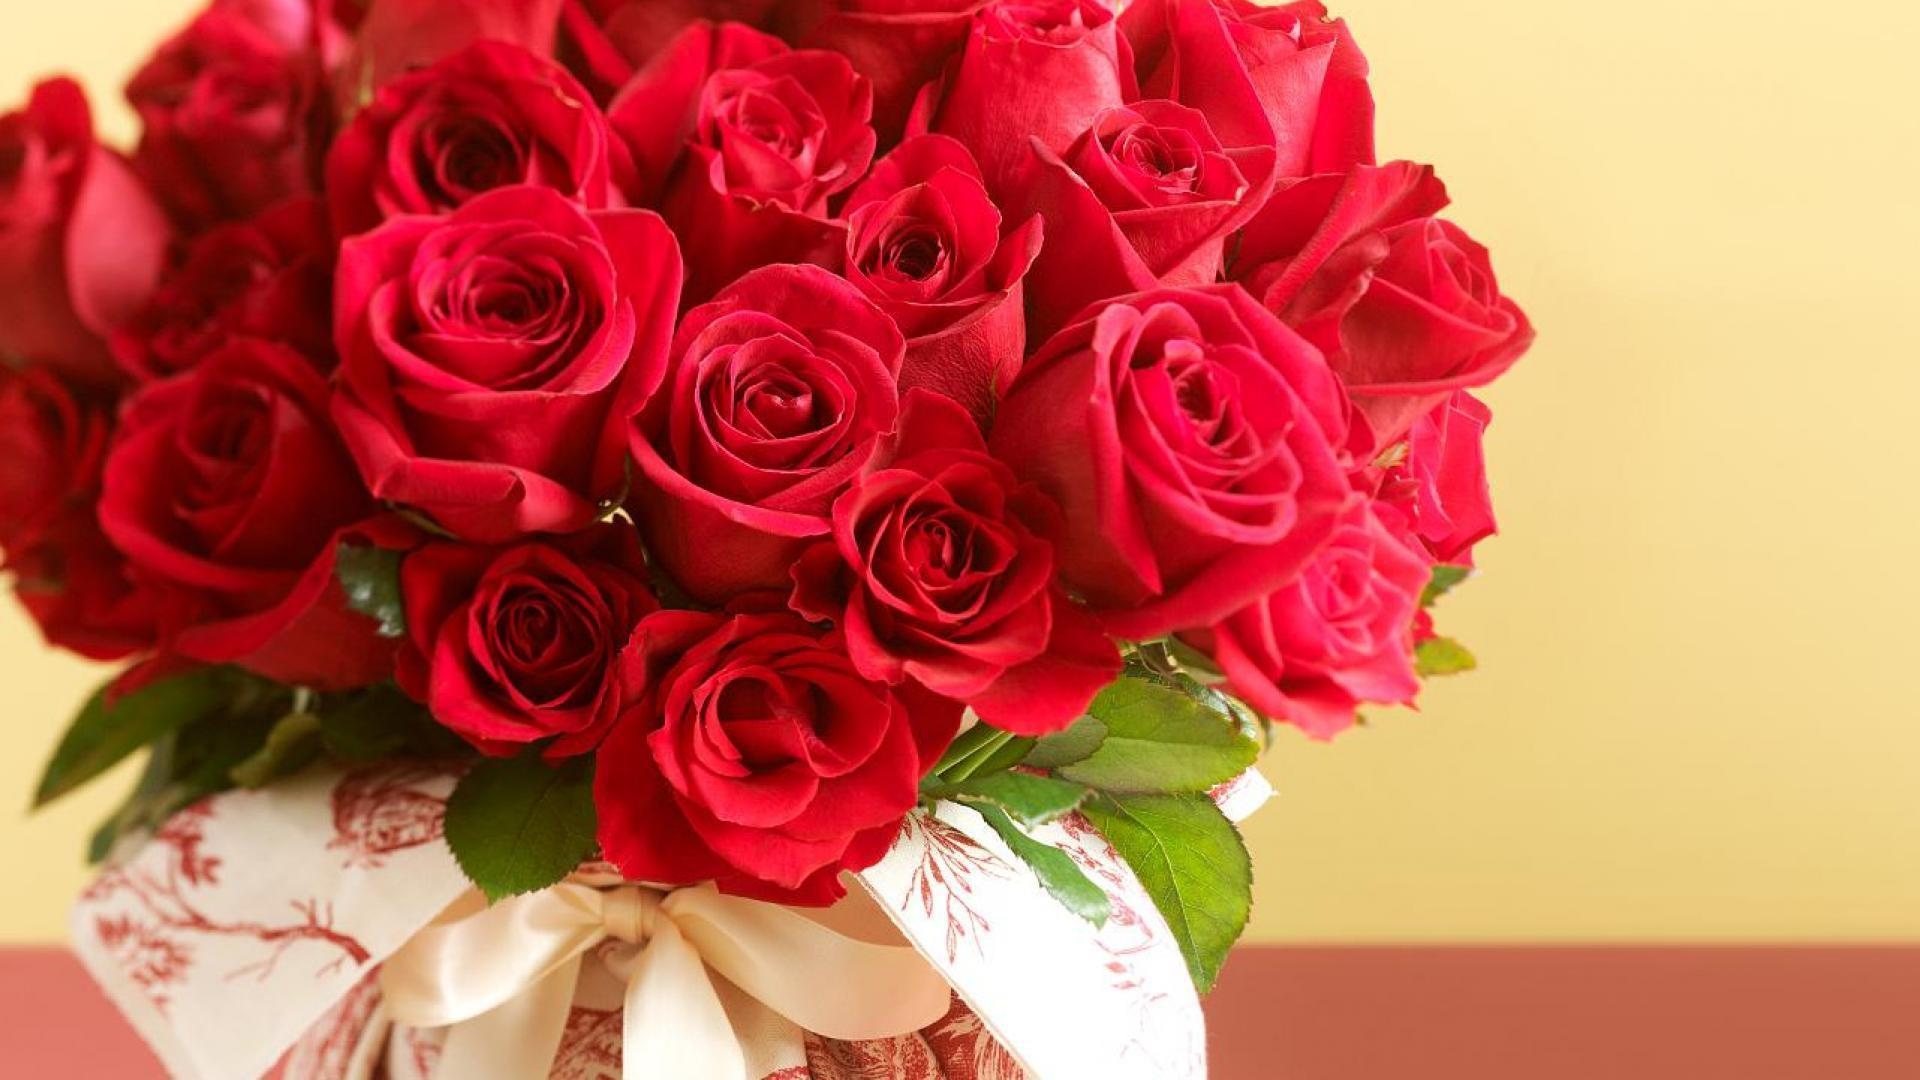 red roses wallpapers for desktop - wallpaper cave